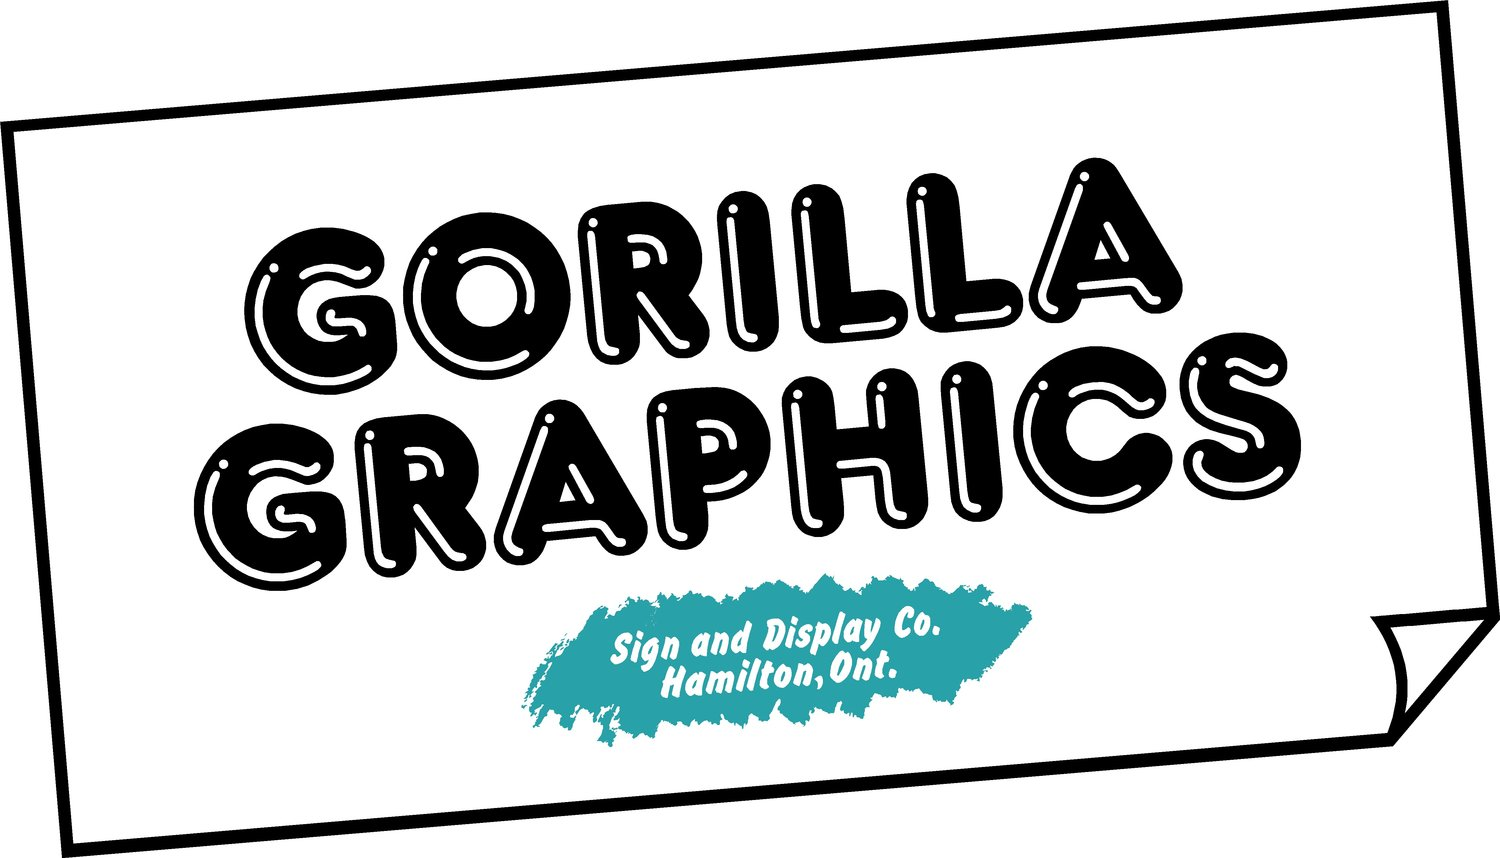 GORILLA GRAPHICS